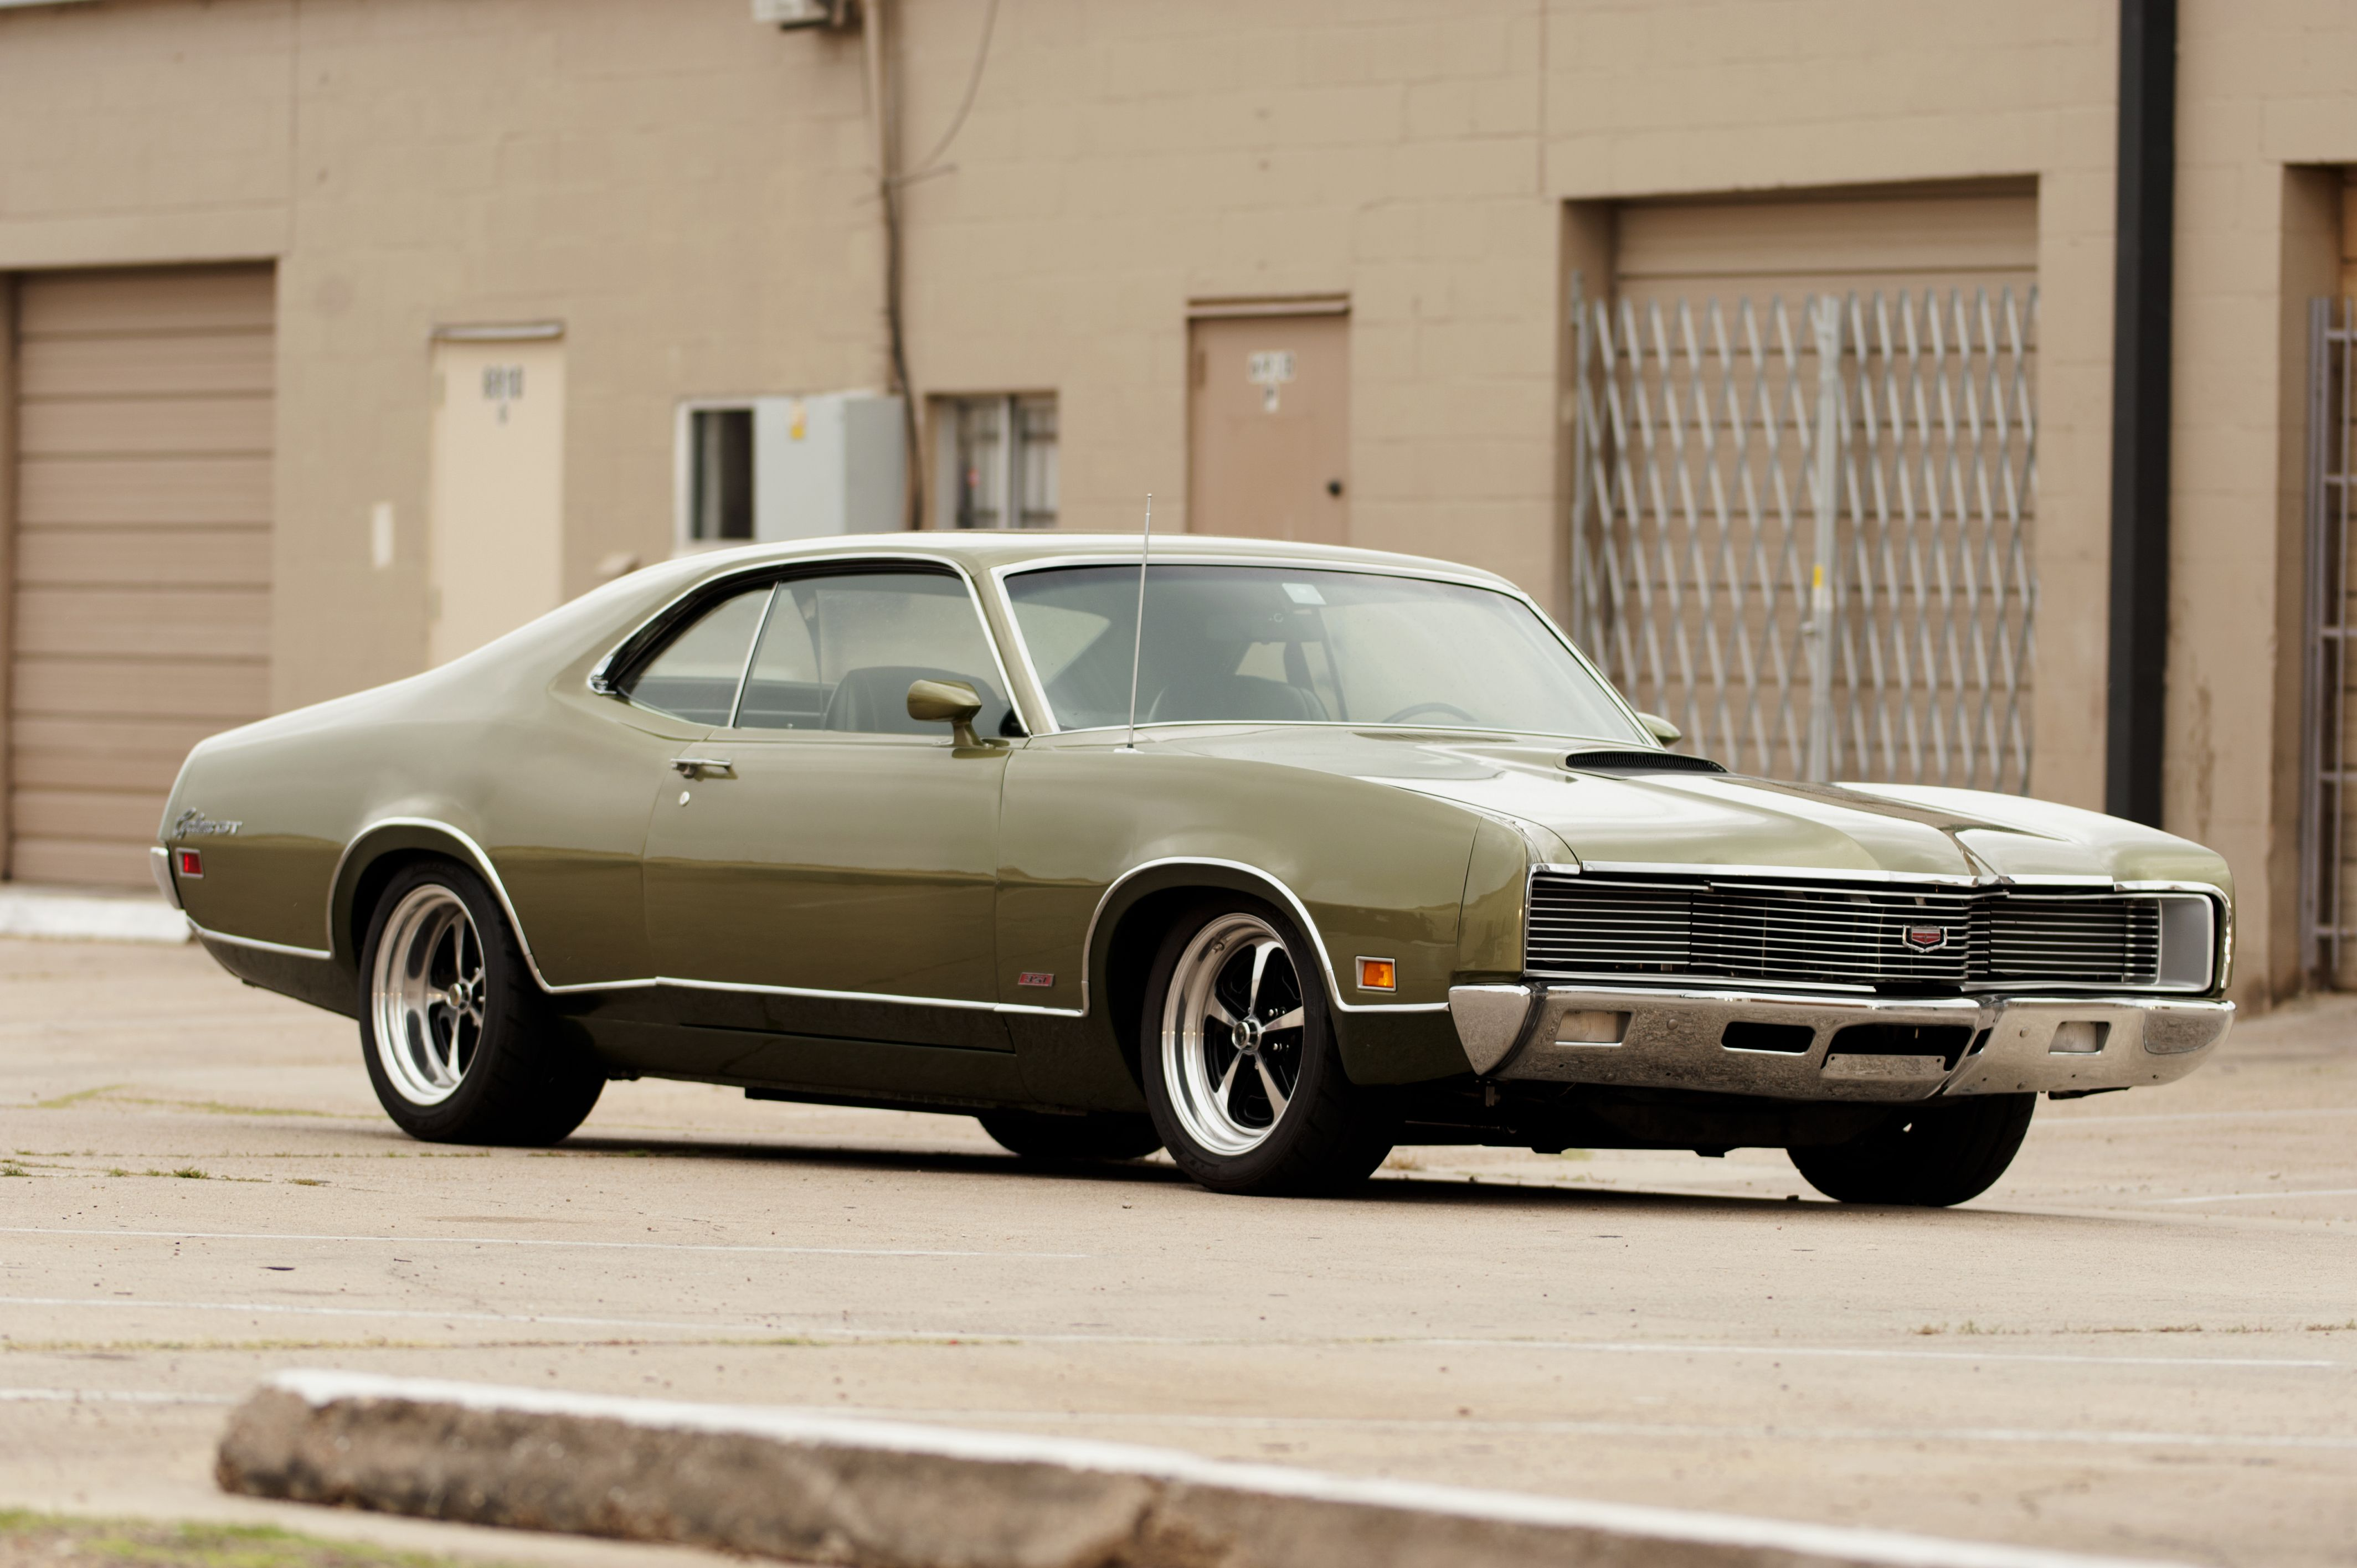 1972 mercury montego n code 429 restomod motorcycle custom - 1970 Montego W Cyclone Grille And Roush 472 Stroker